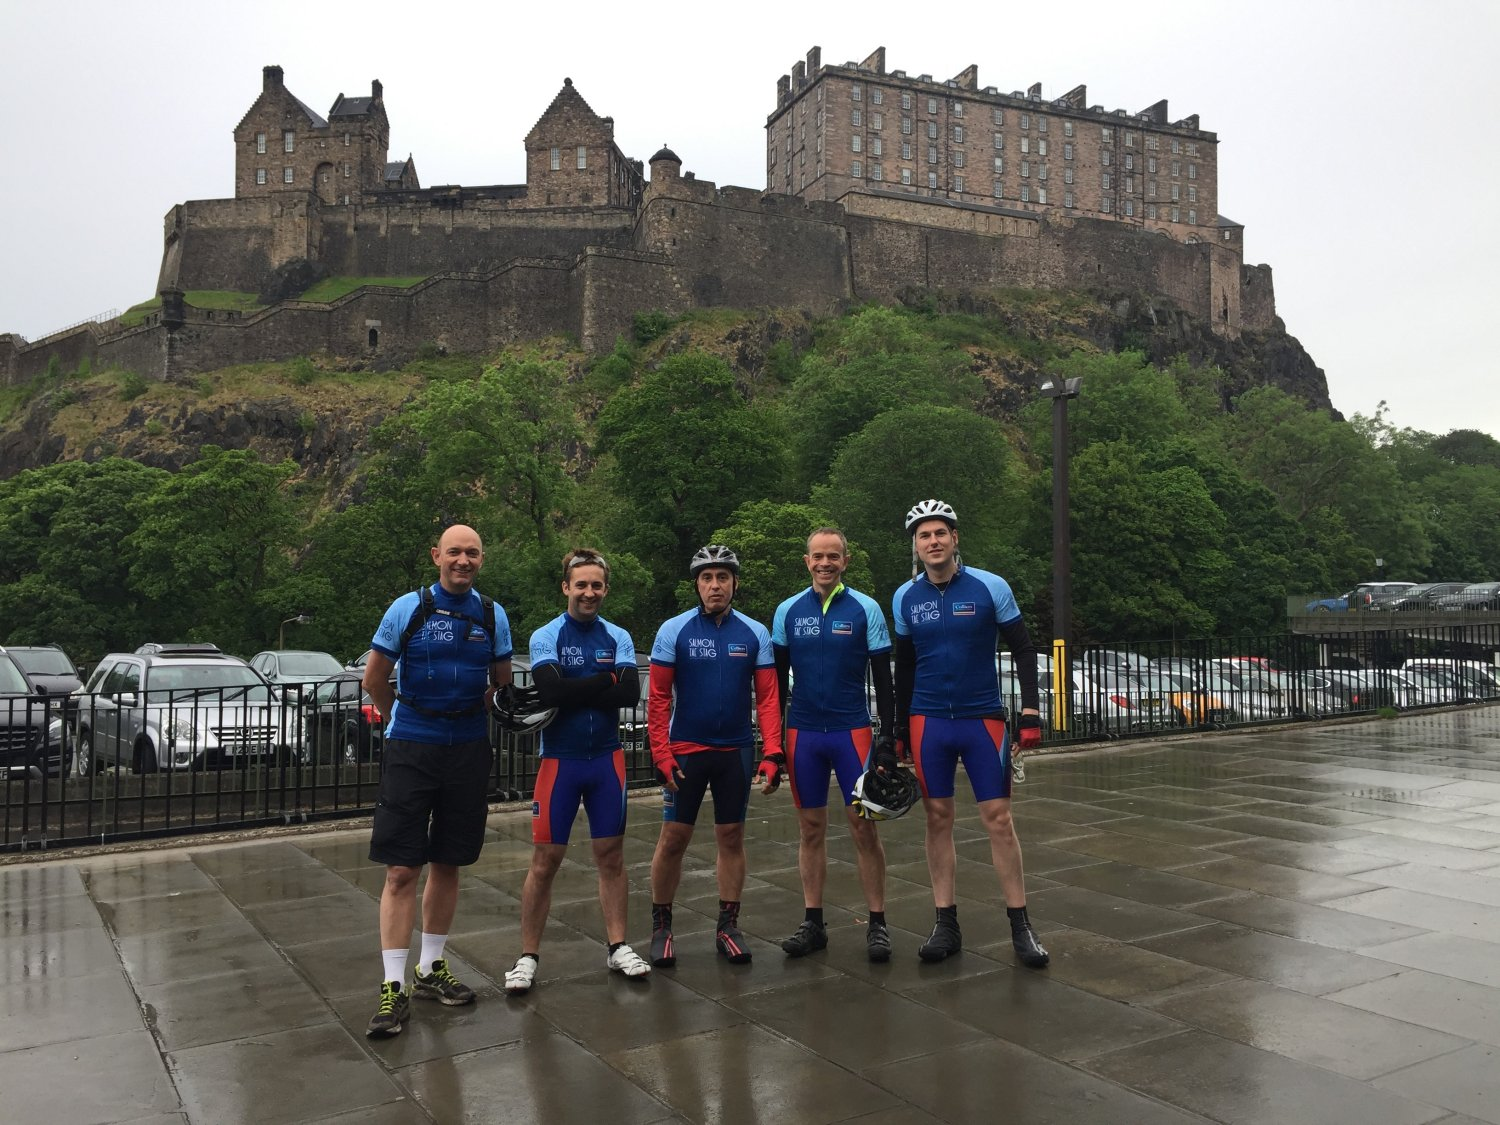 collierscyclechallenge17 (Scotland team)